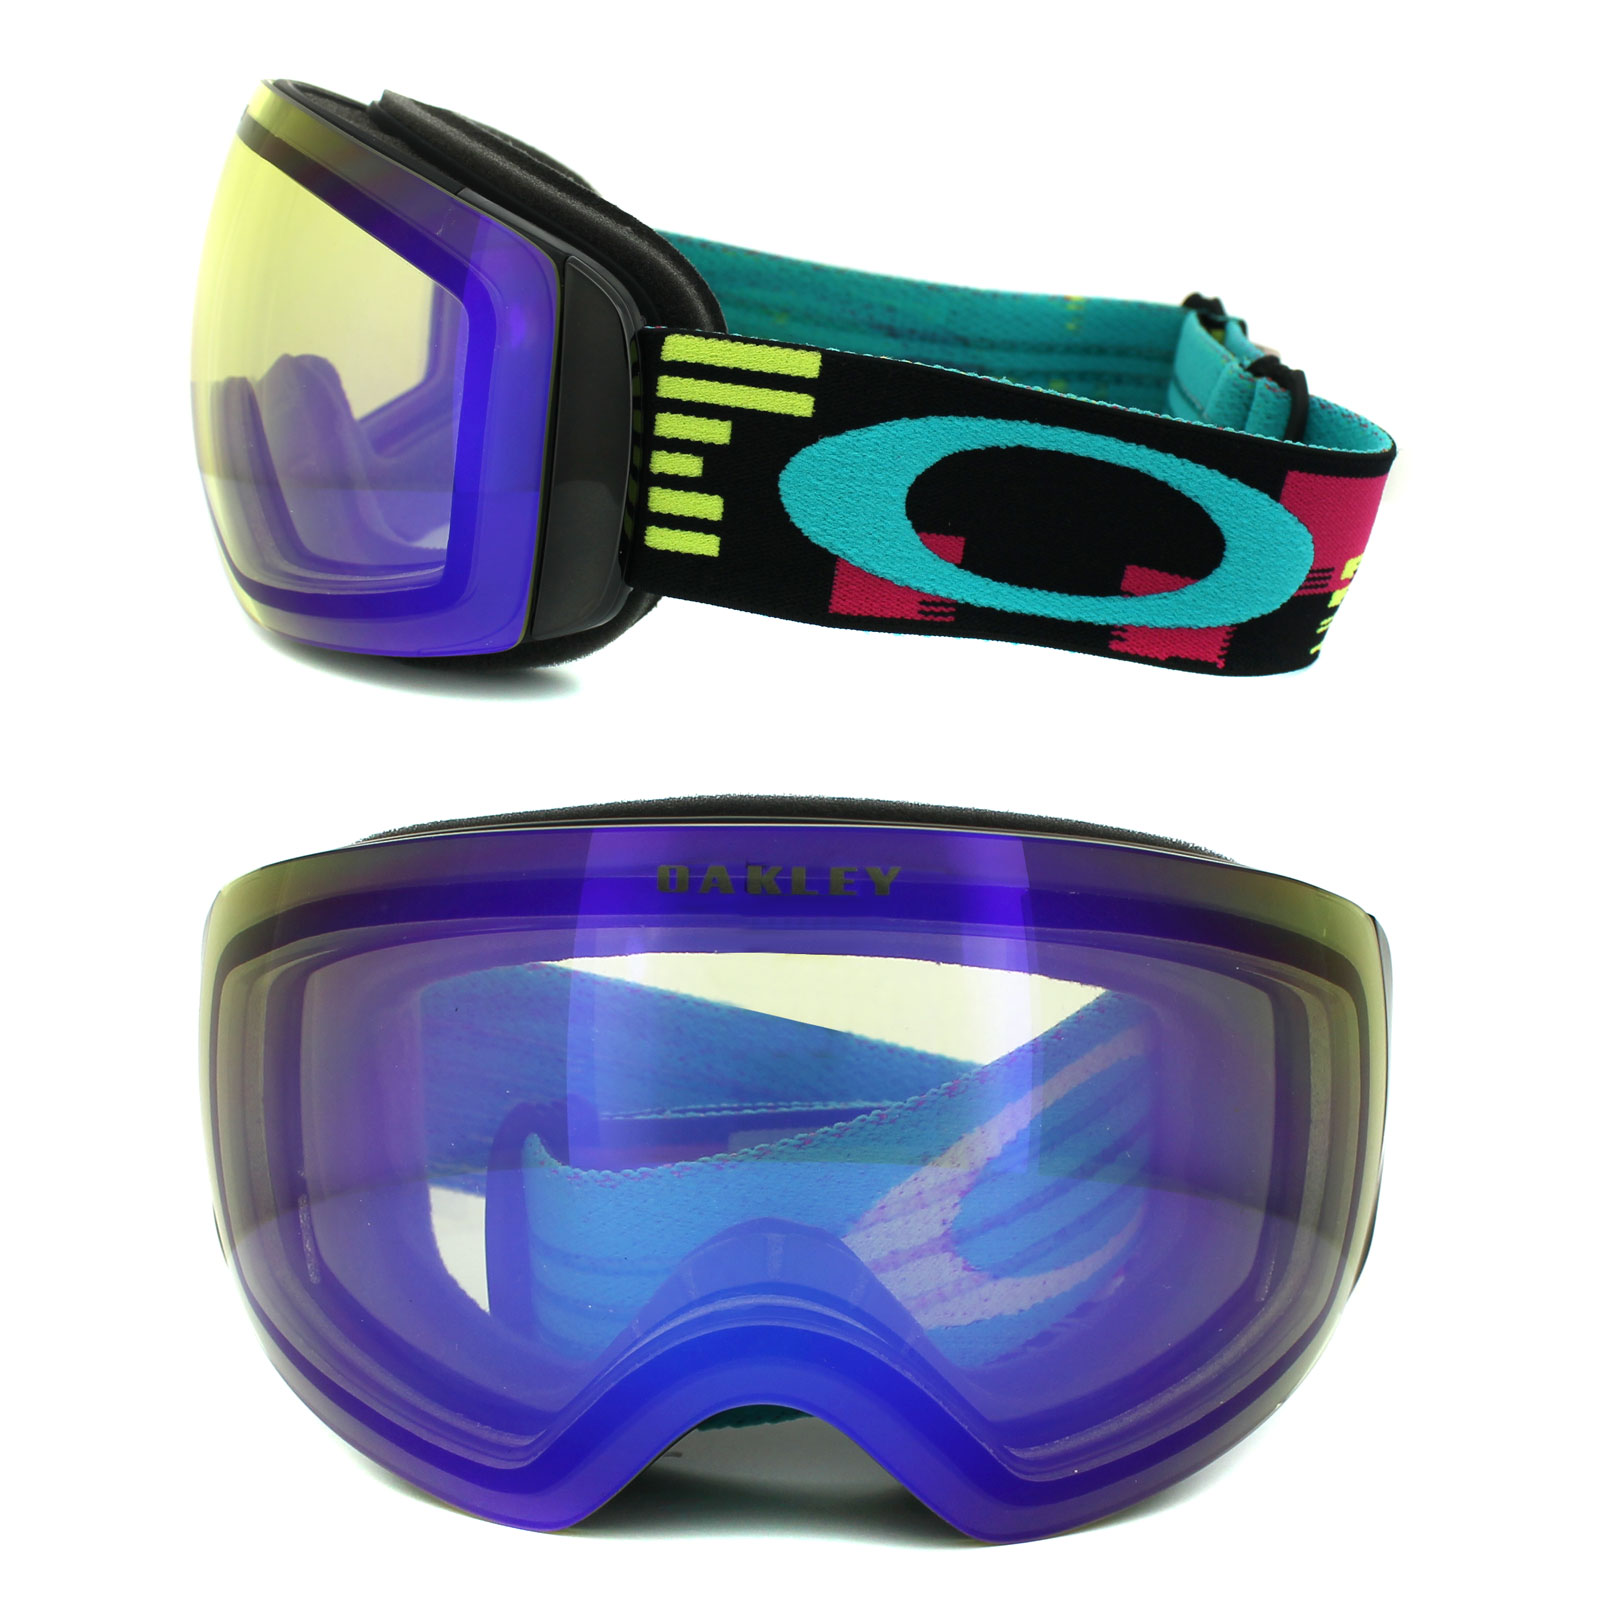 oakley flight deck snow goggles 62dk  Sentinel Oakley Ski Snow Goggles Flight Deck XM OO7064-05 Disruptive Neon  HI Yellow